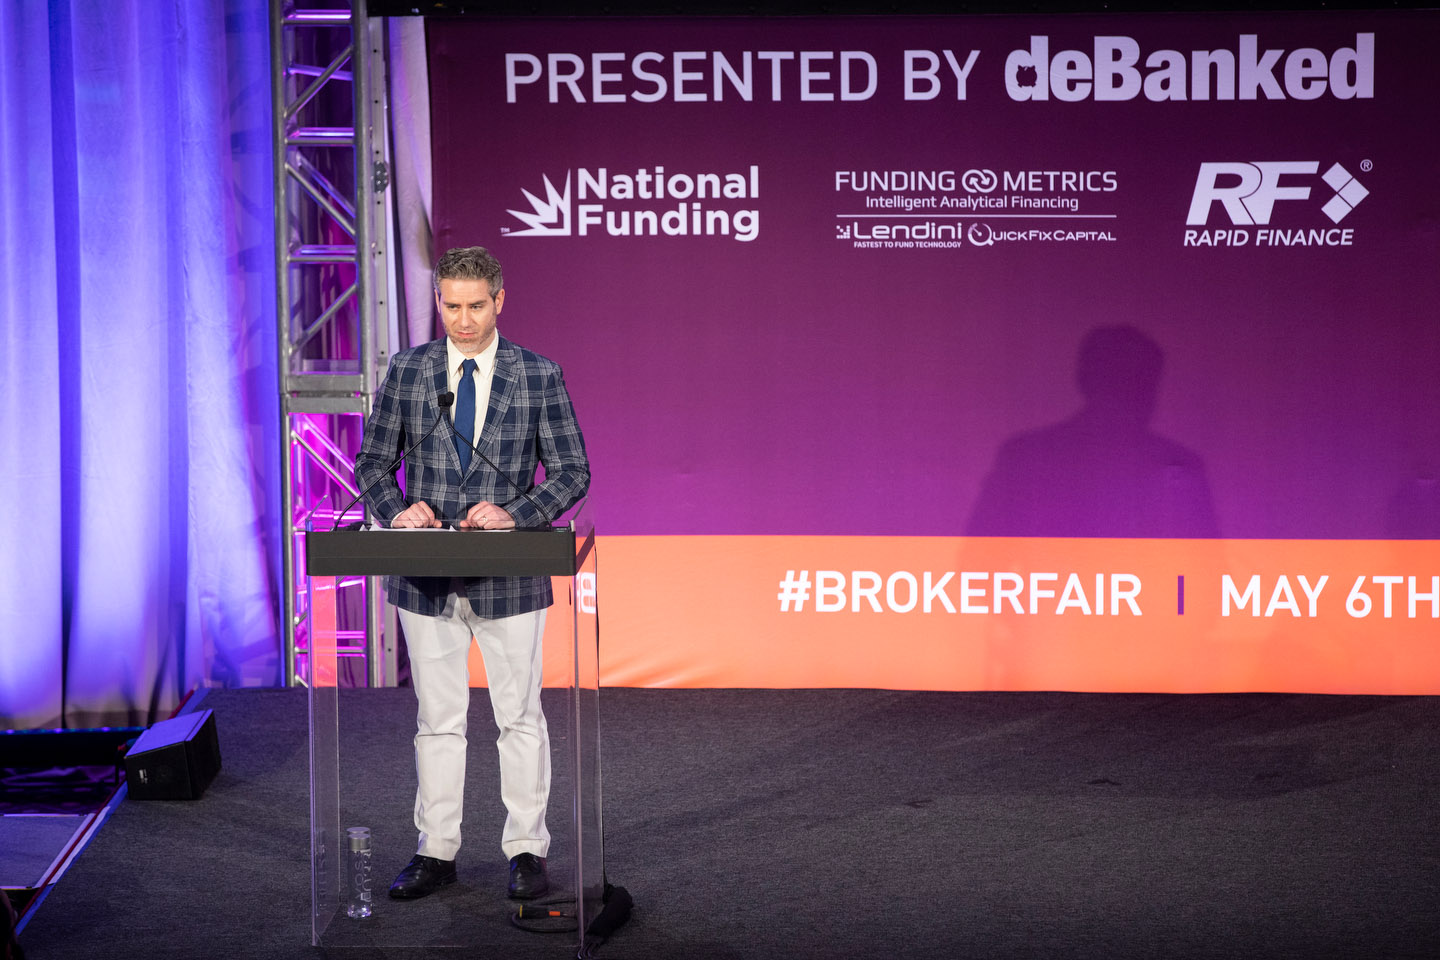 Broker Fair 2019 - Presented by deBanked - 365